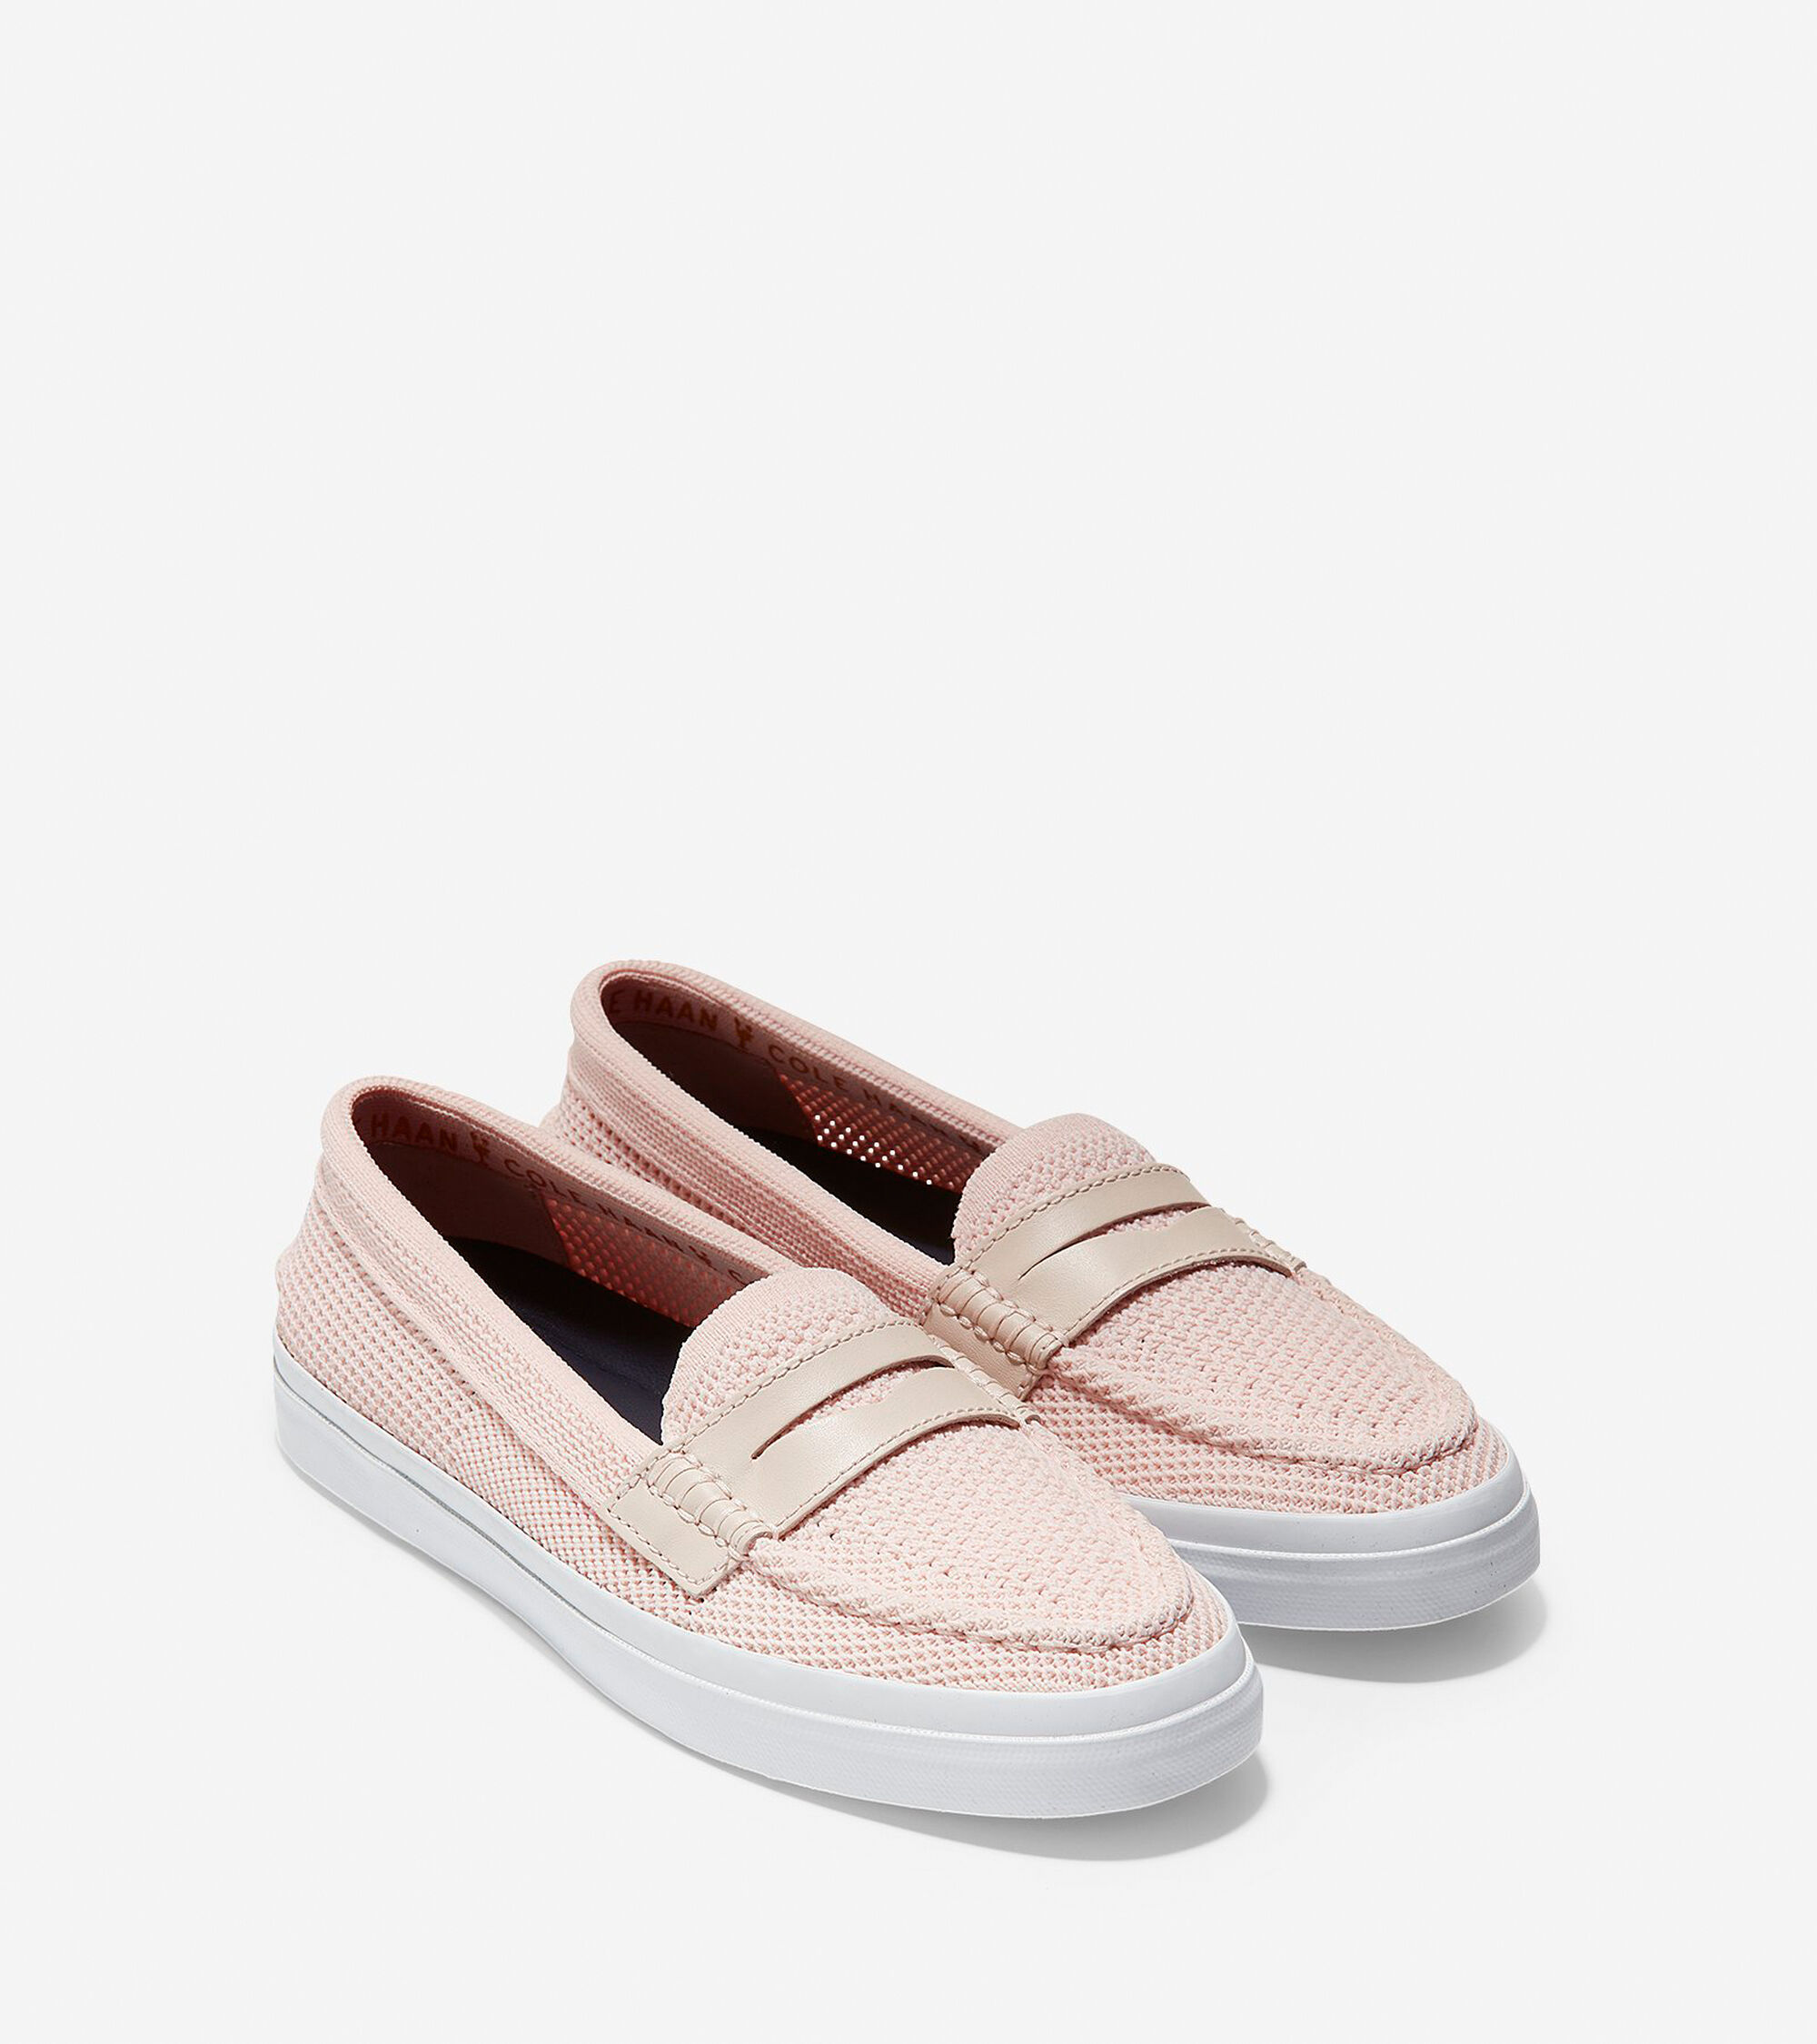 16a85740fc8 ... Women s Pinch Weekender LX Loafer with Stitchlite™ ...